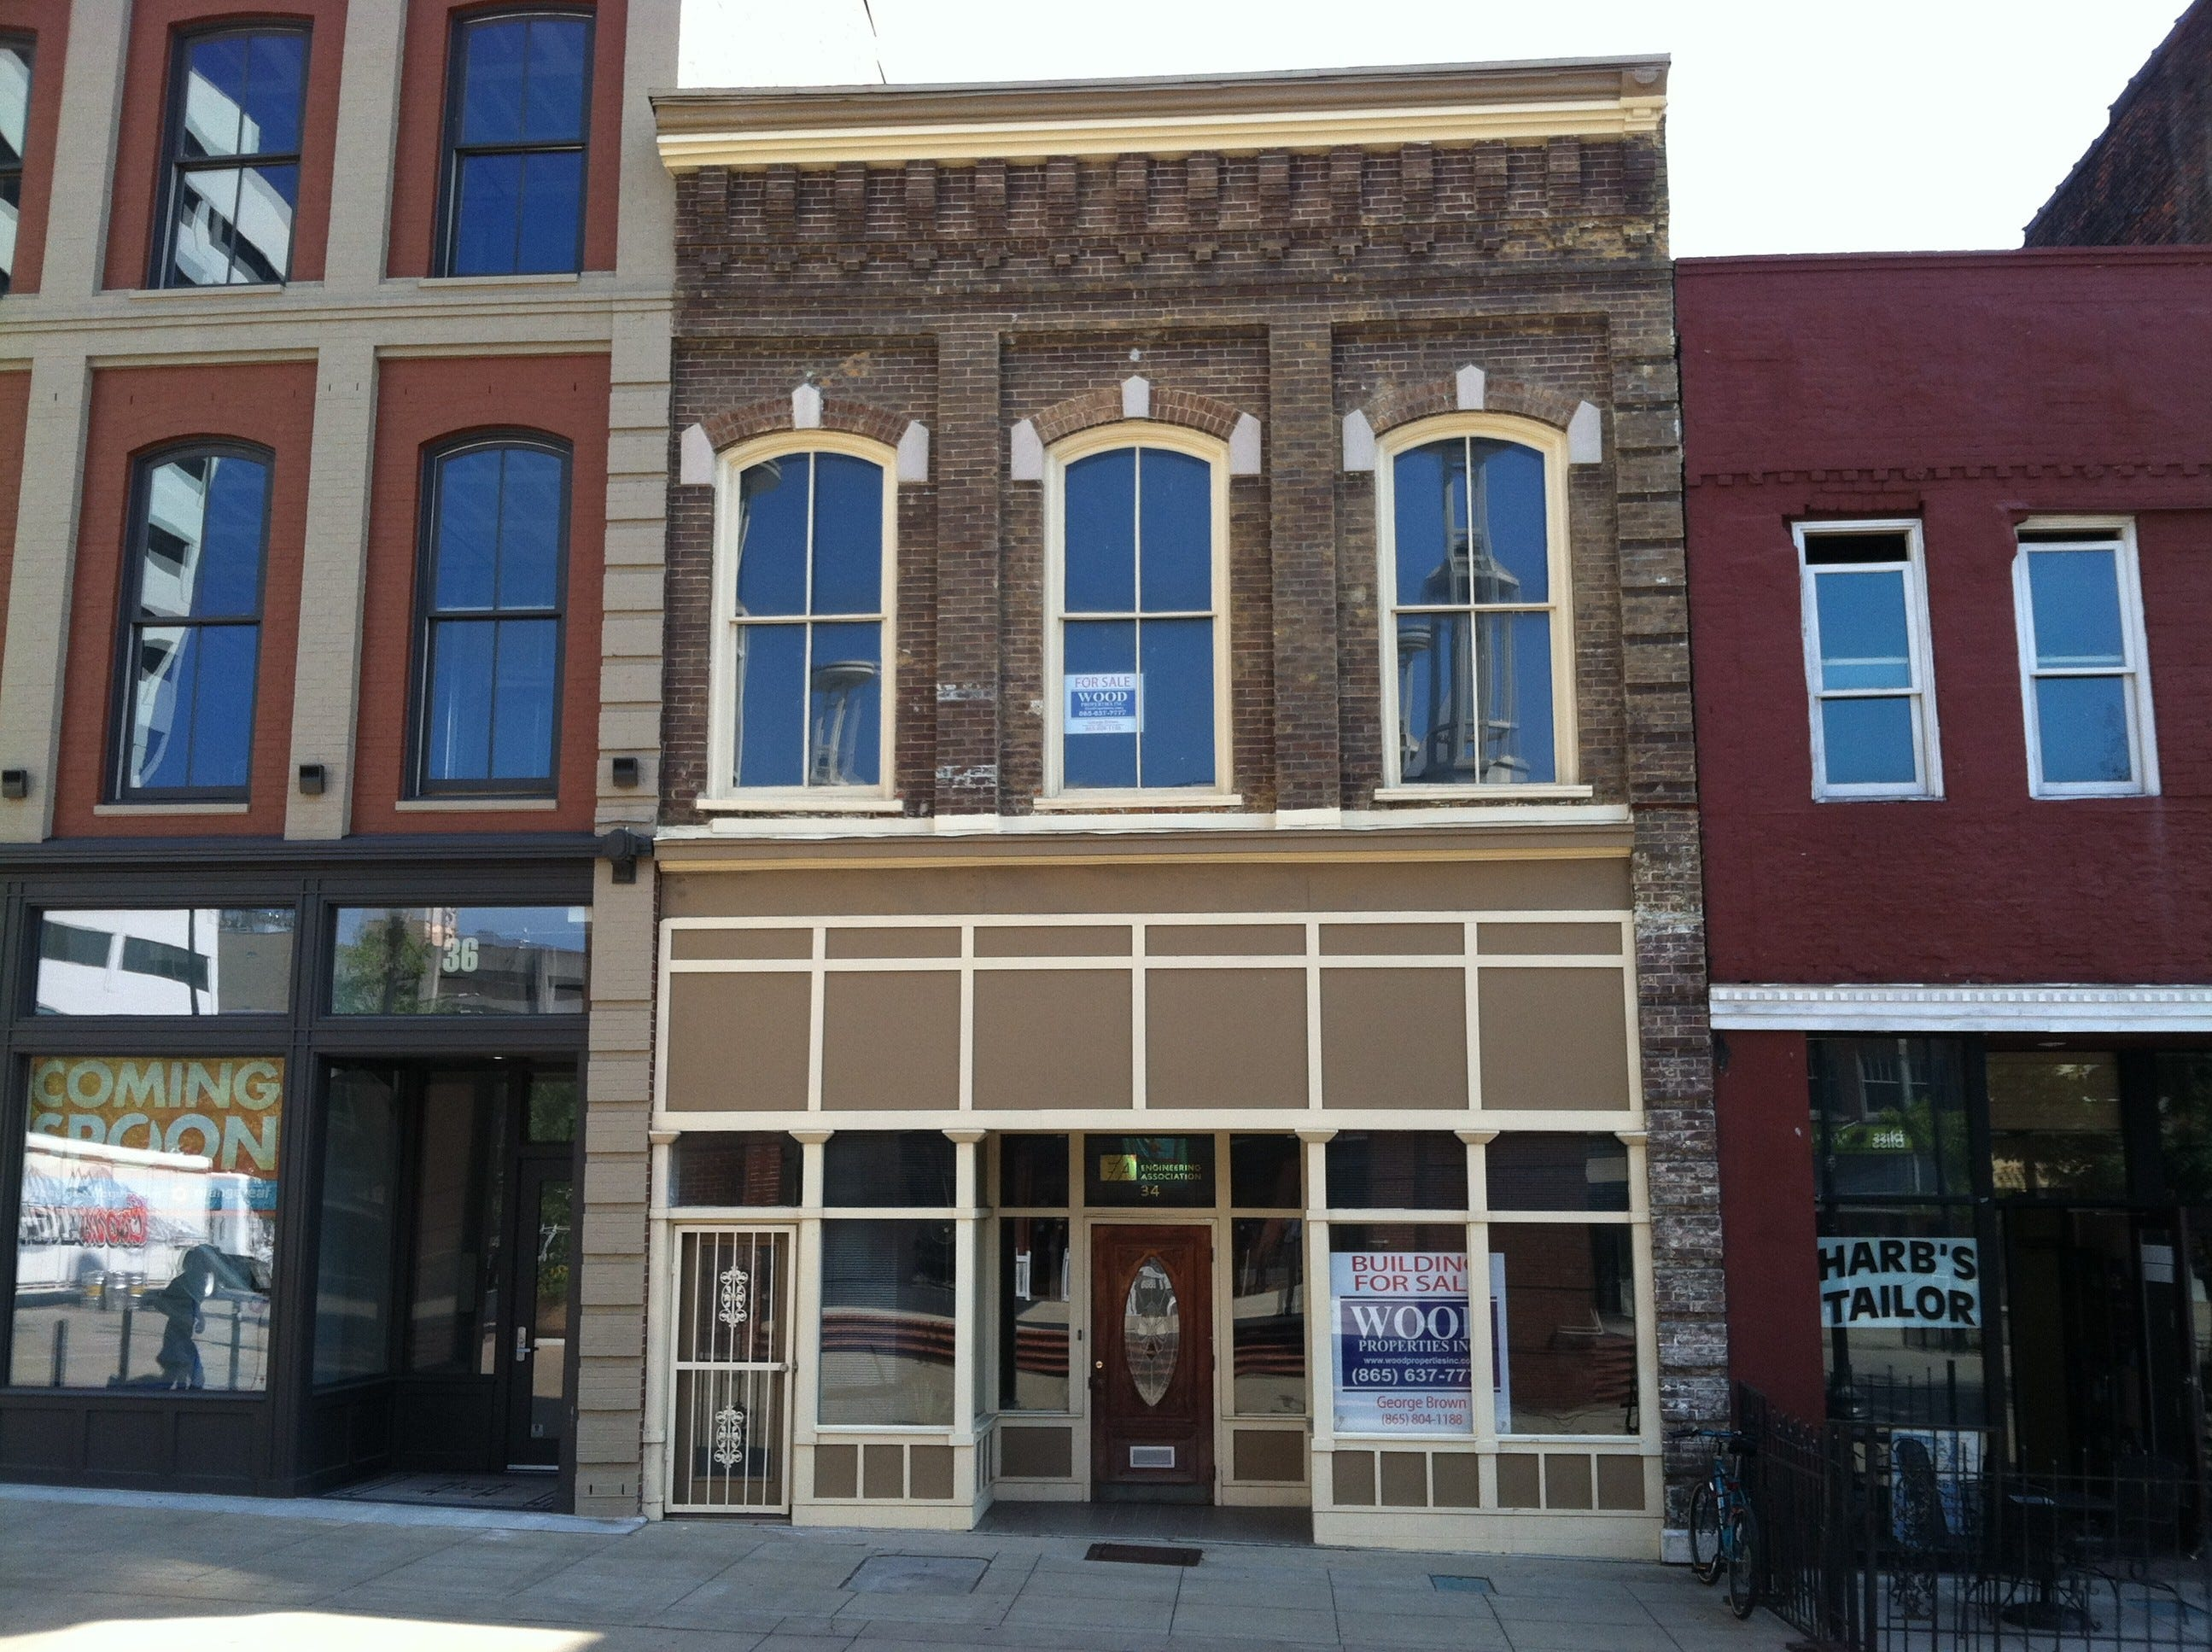 A building at 34 Market Square is pictured in 2012. The building was sold on Oct. 1, 2012, for $400,000.